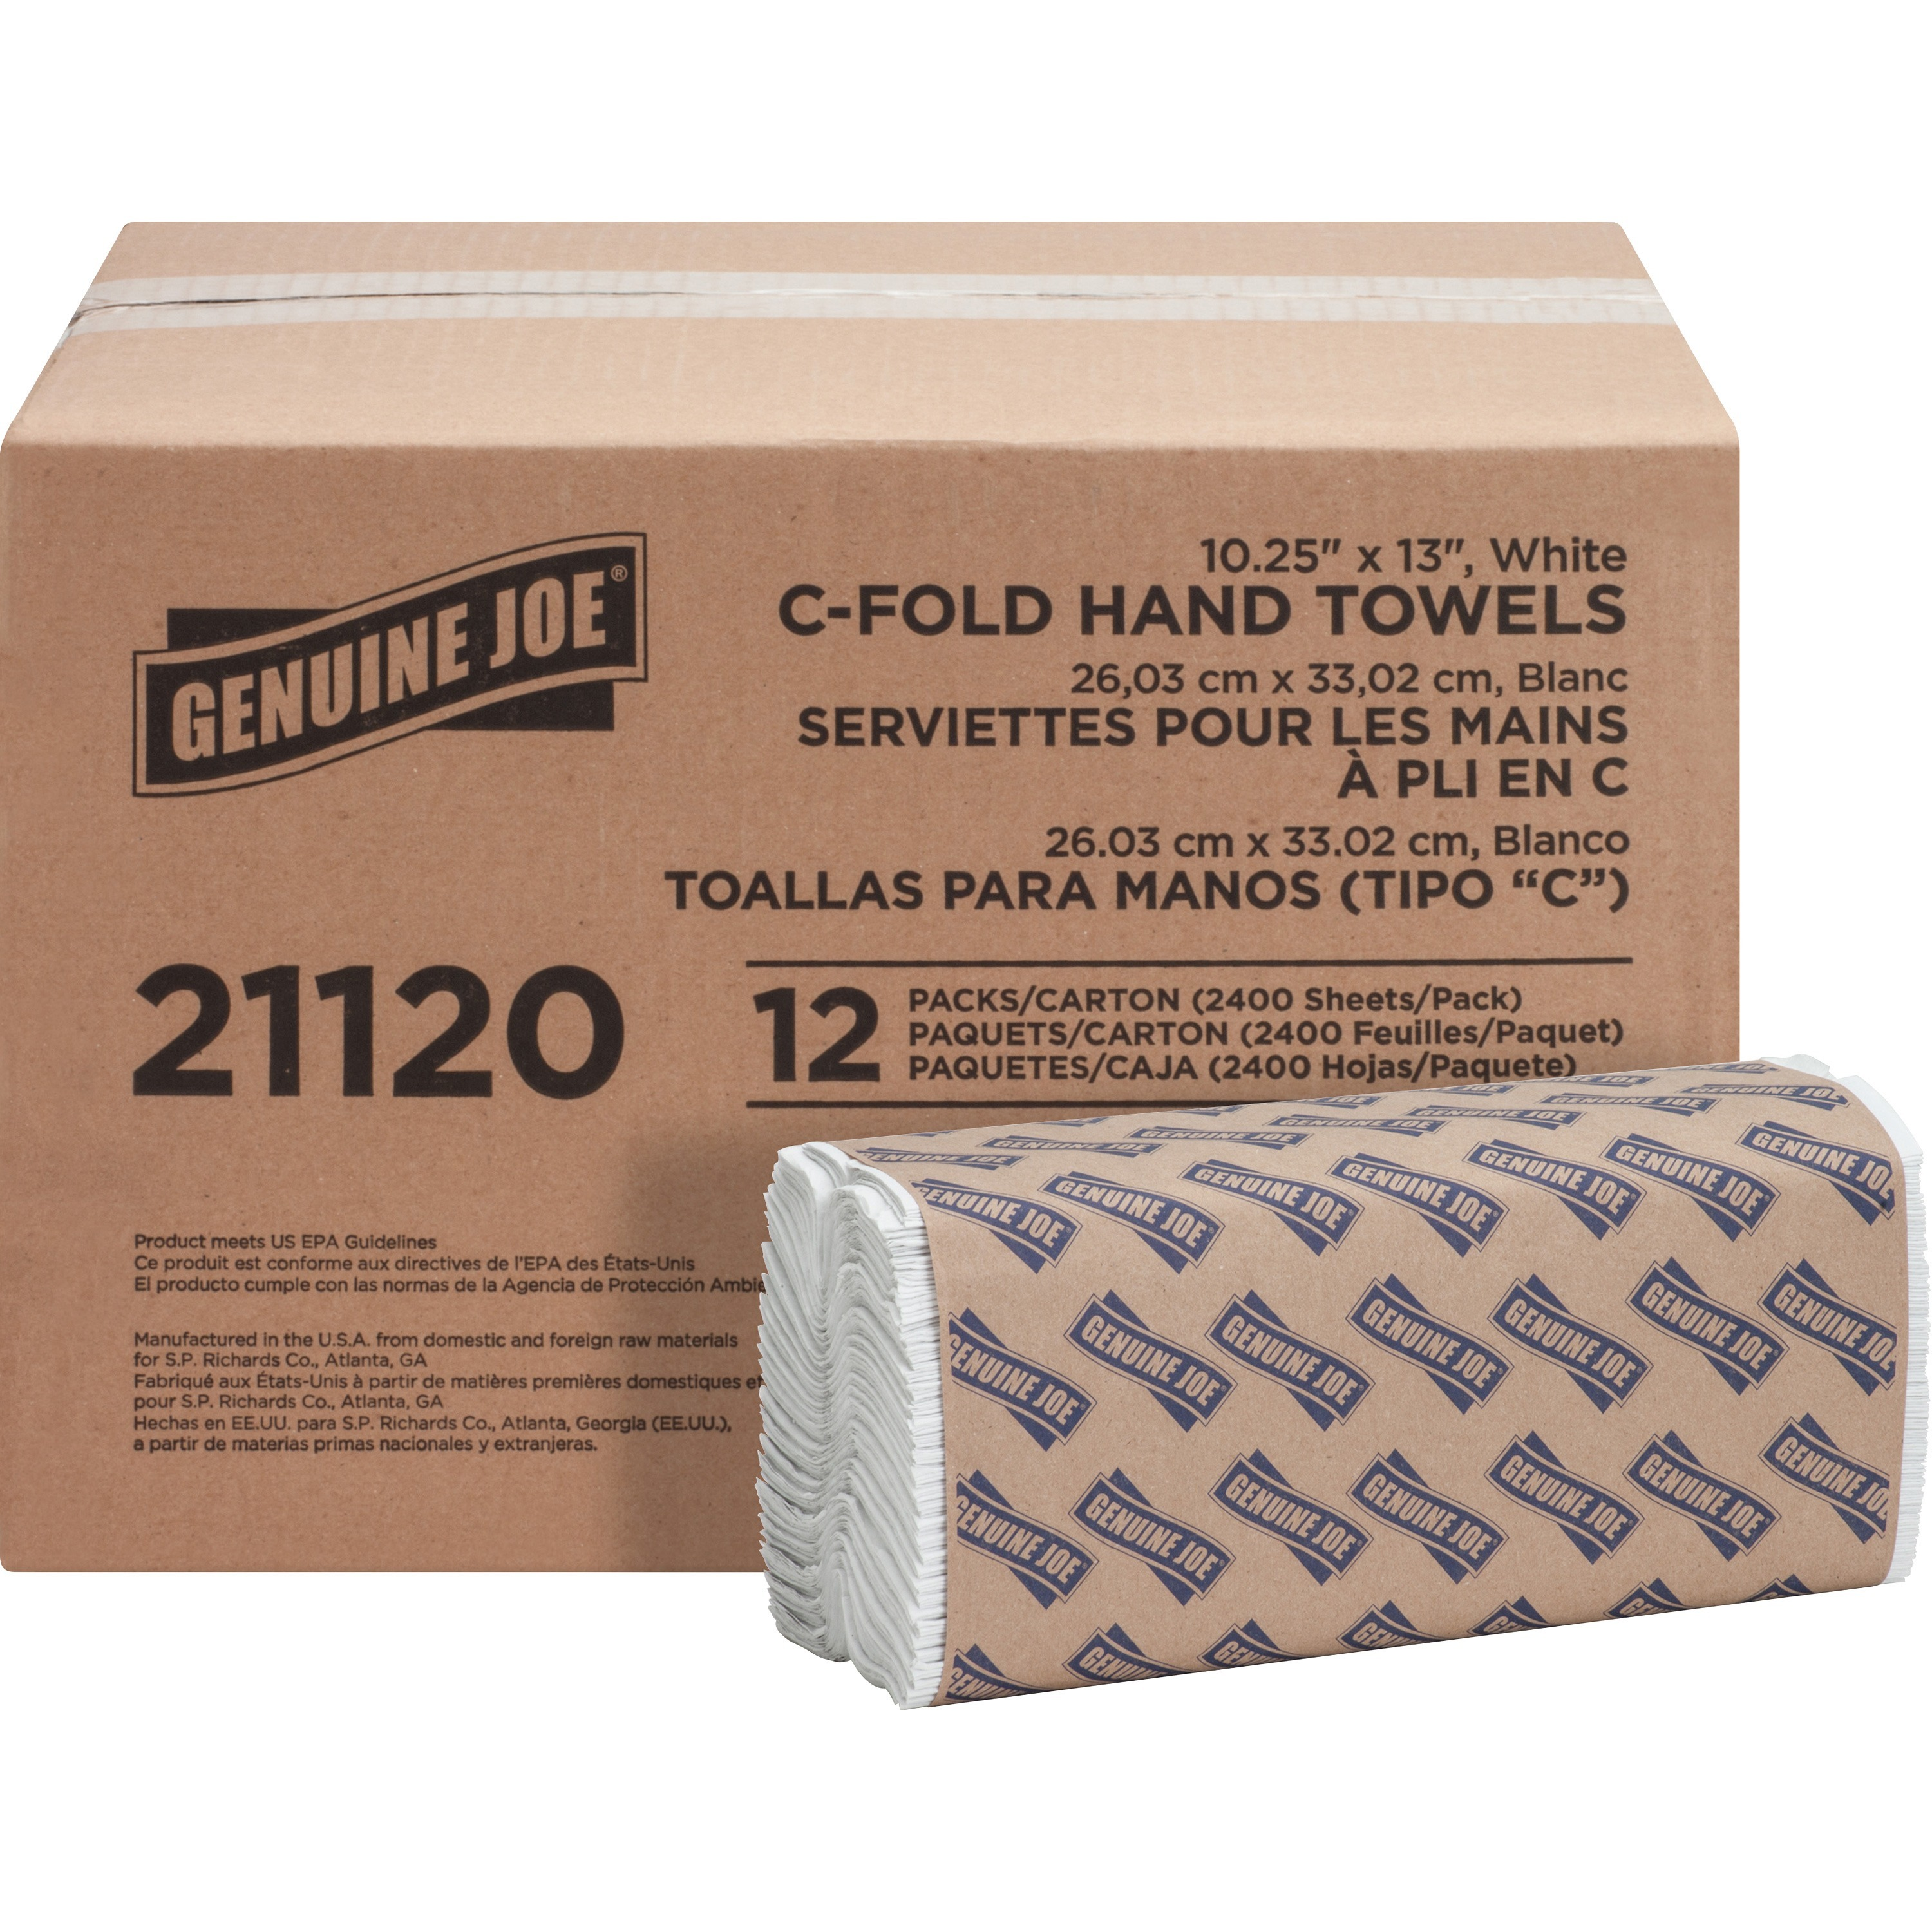 Genuine Joe, GJO21120, C-Fold Paper Towels, 2400 / Carton, White